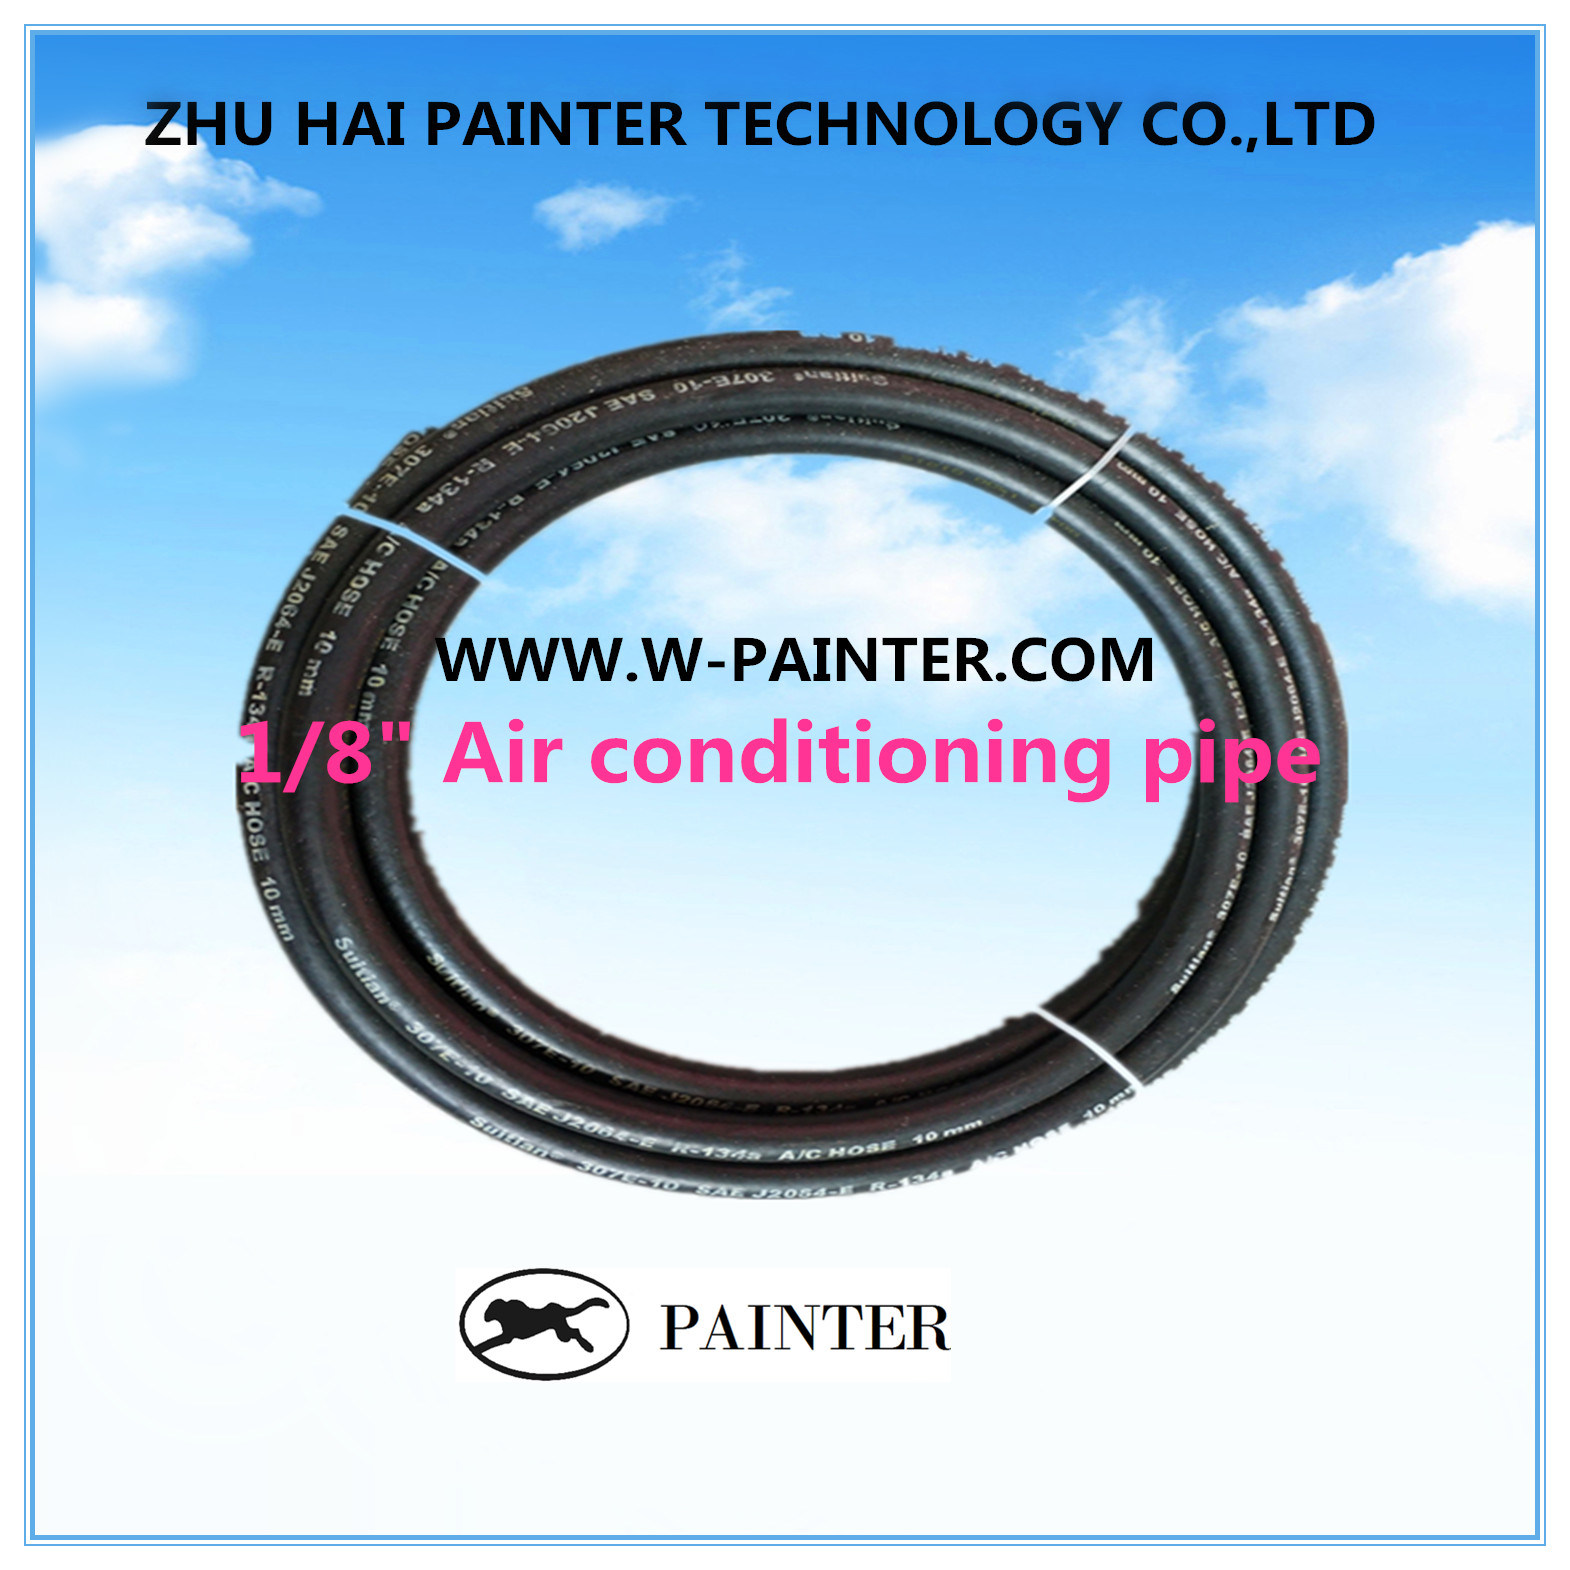 """1/8""""Air Conditioning Pipe for Air Conditioning"""